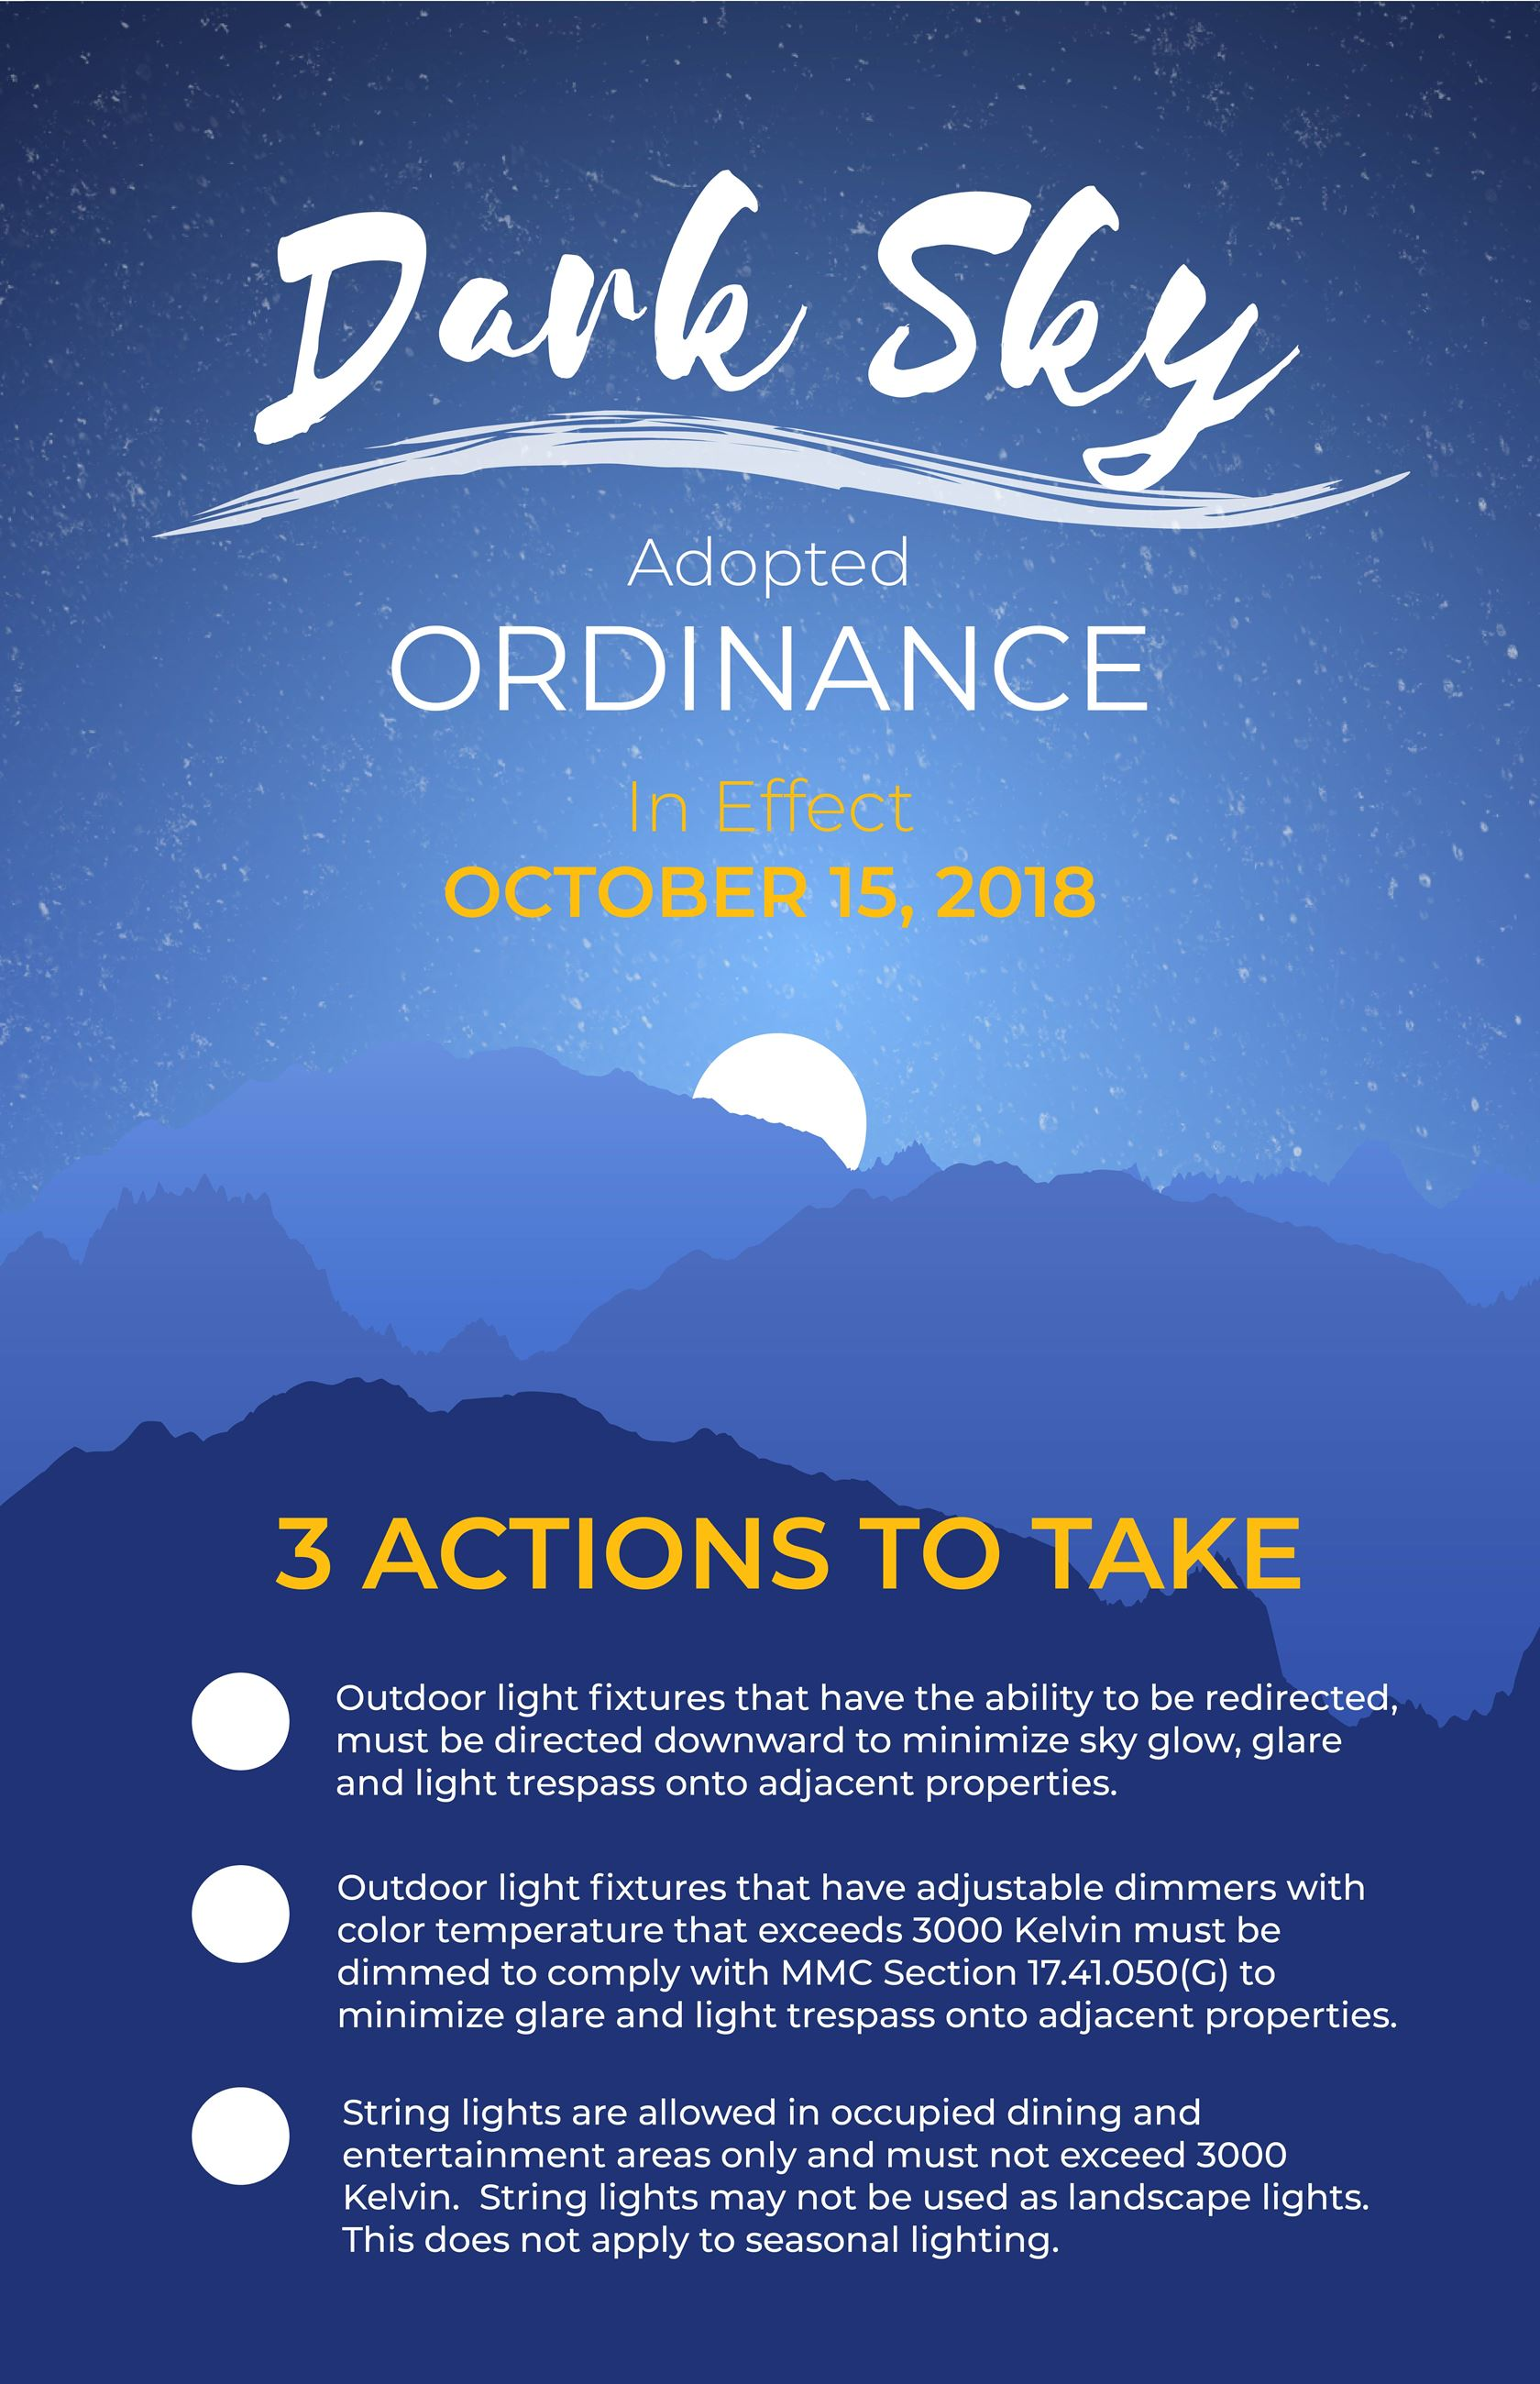 Dark sky ordinance